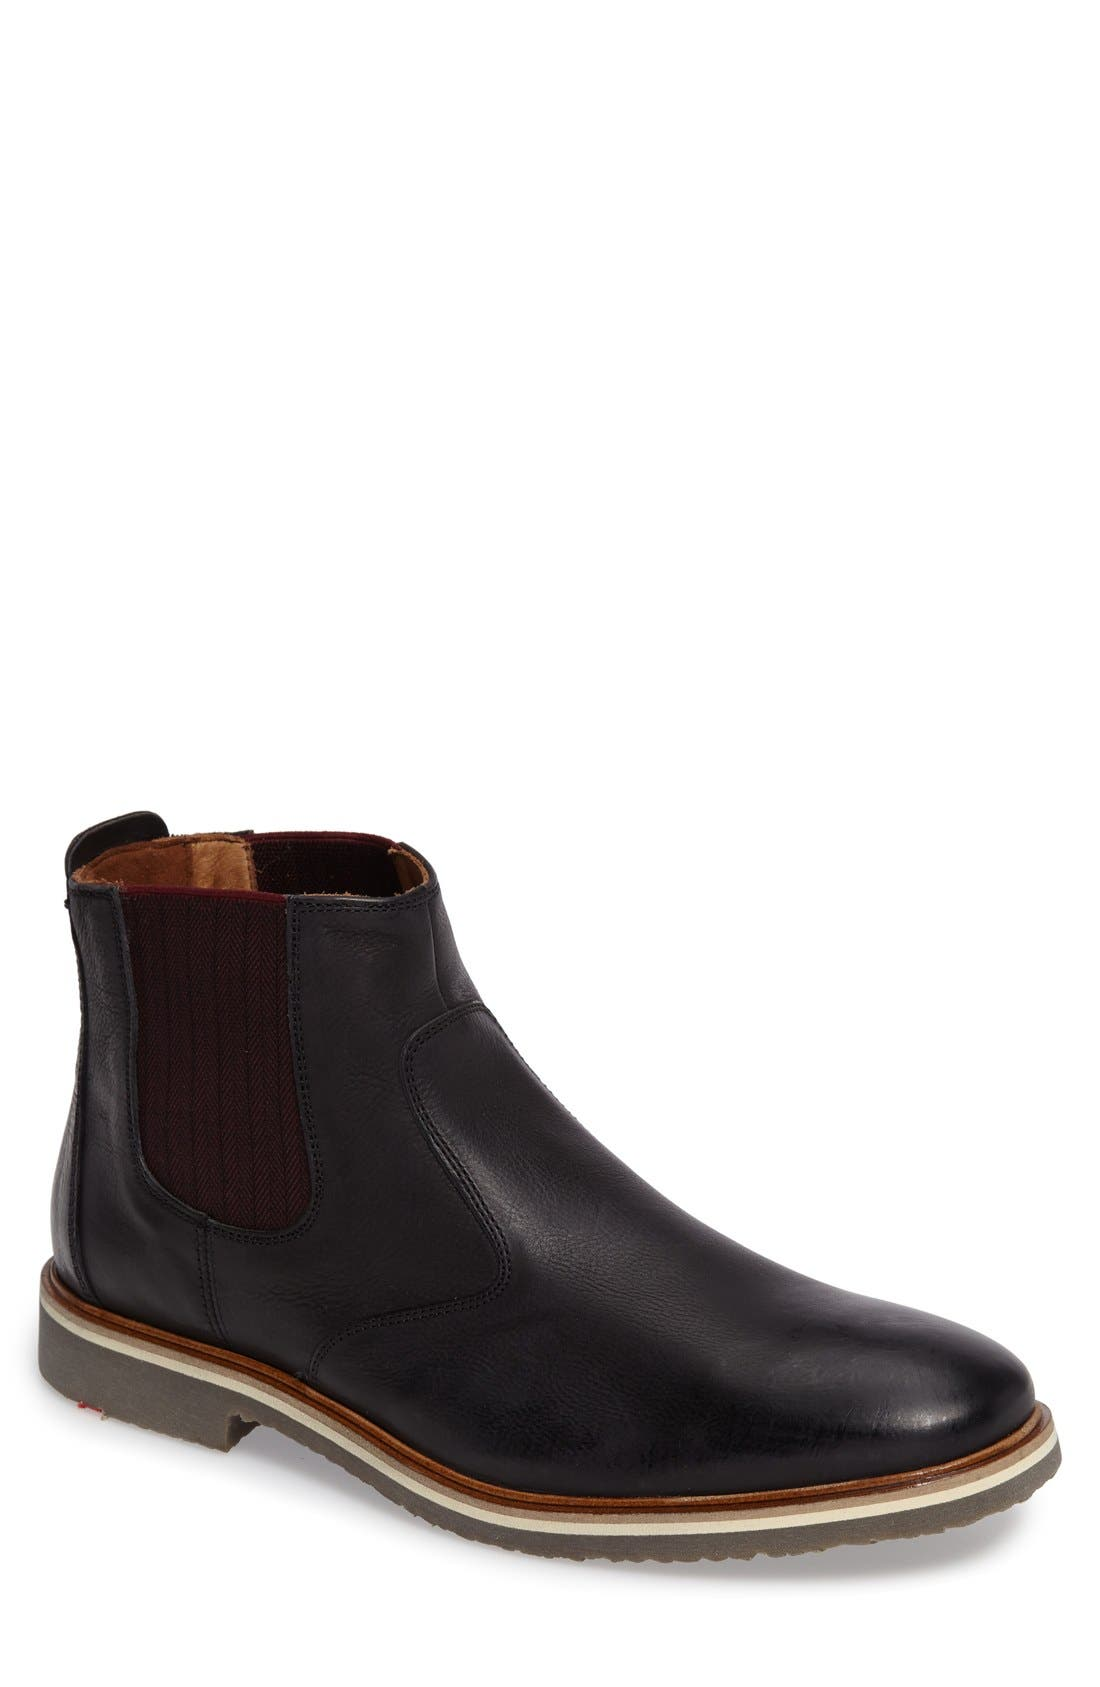 Main Image - Lloyd Slava Mid Chelsea Boot (Men)